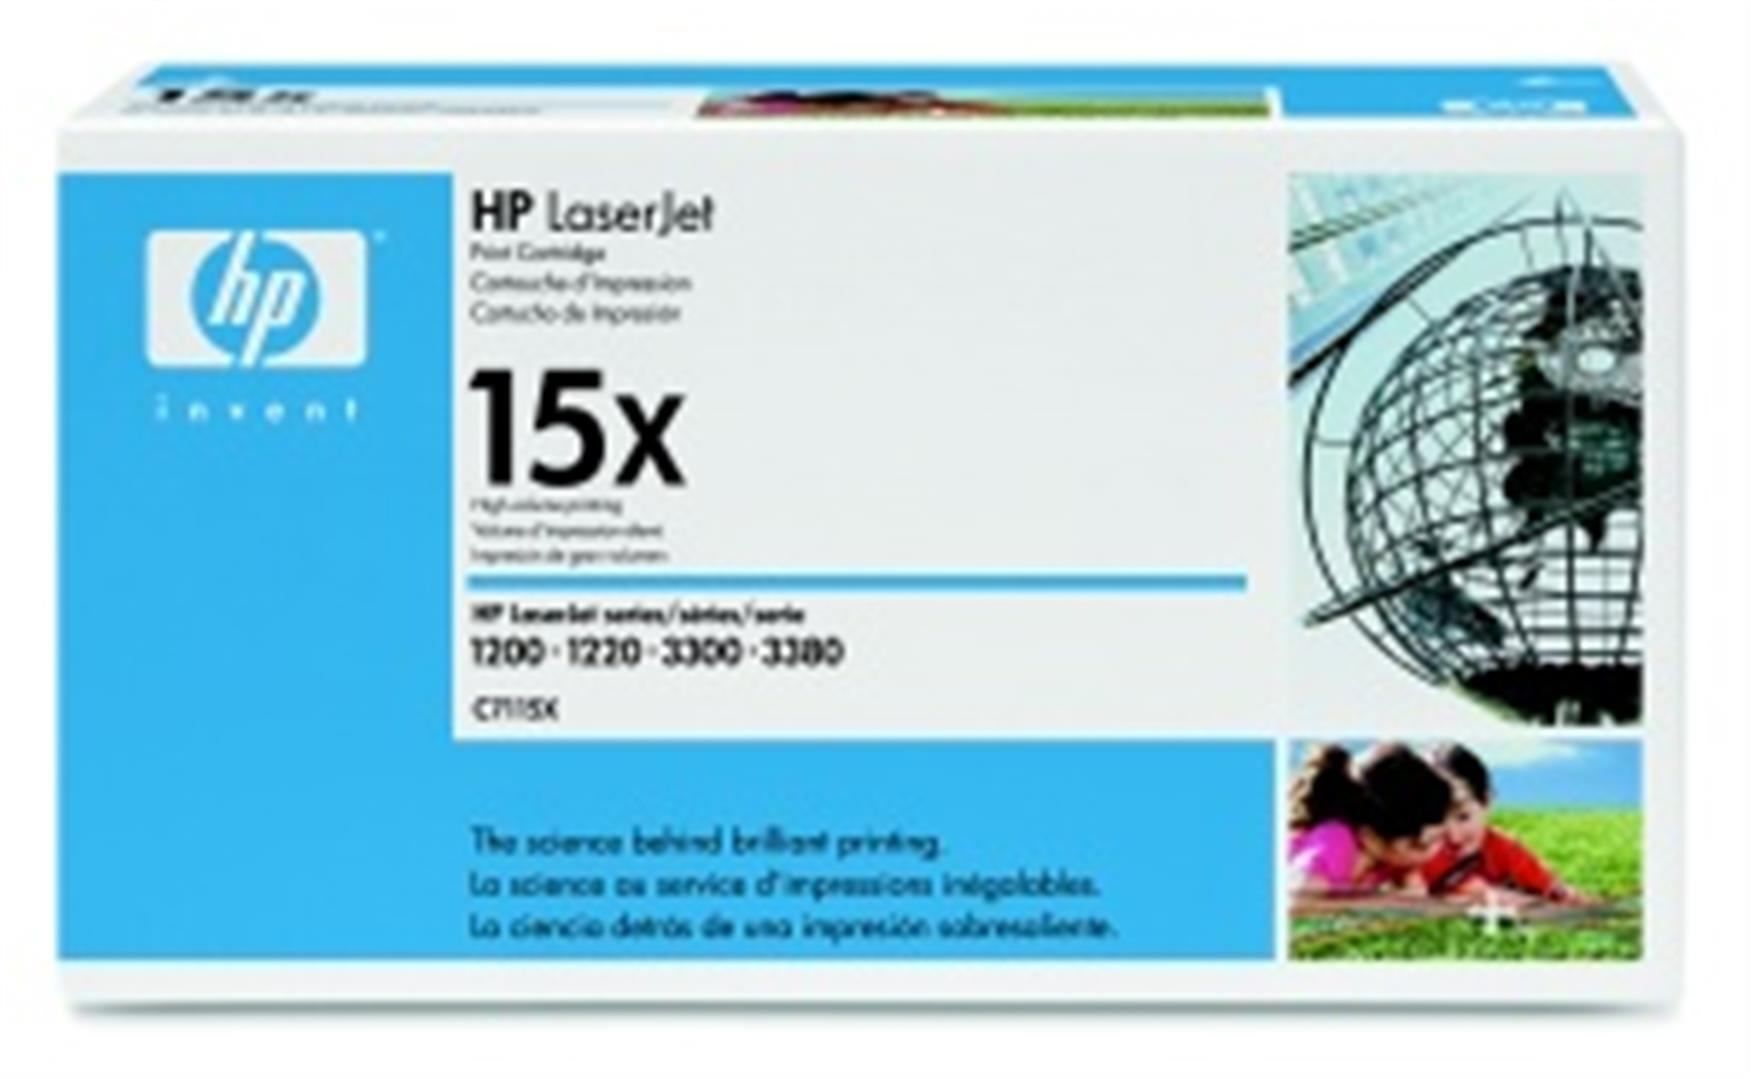 HP Toner Cartridge for HP LaserJet 12x0 (appx. 3500 pages)